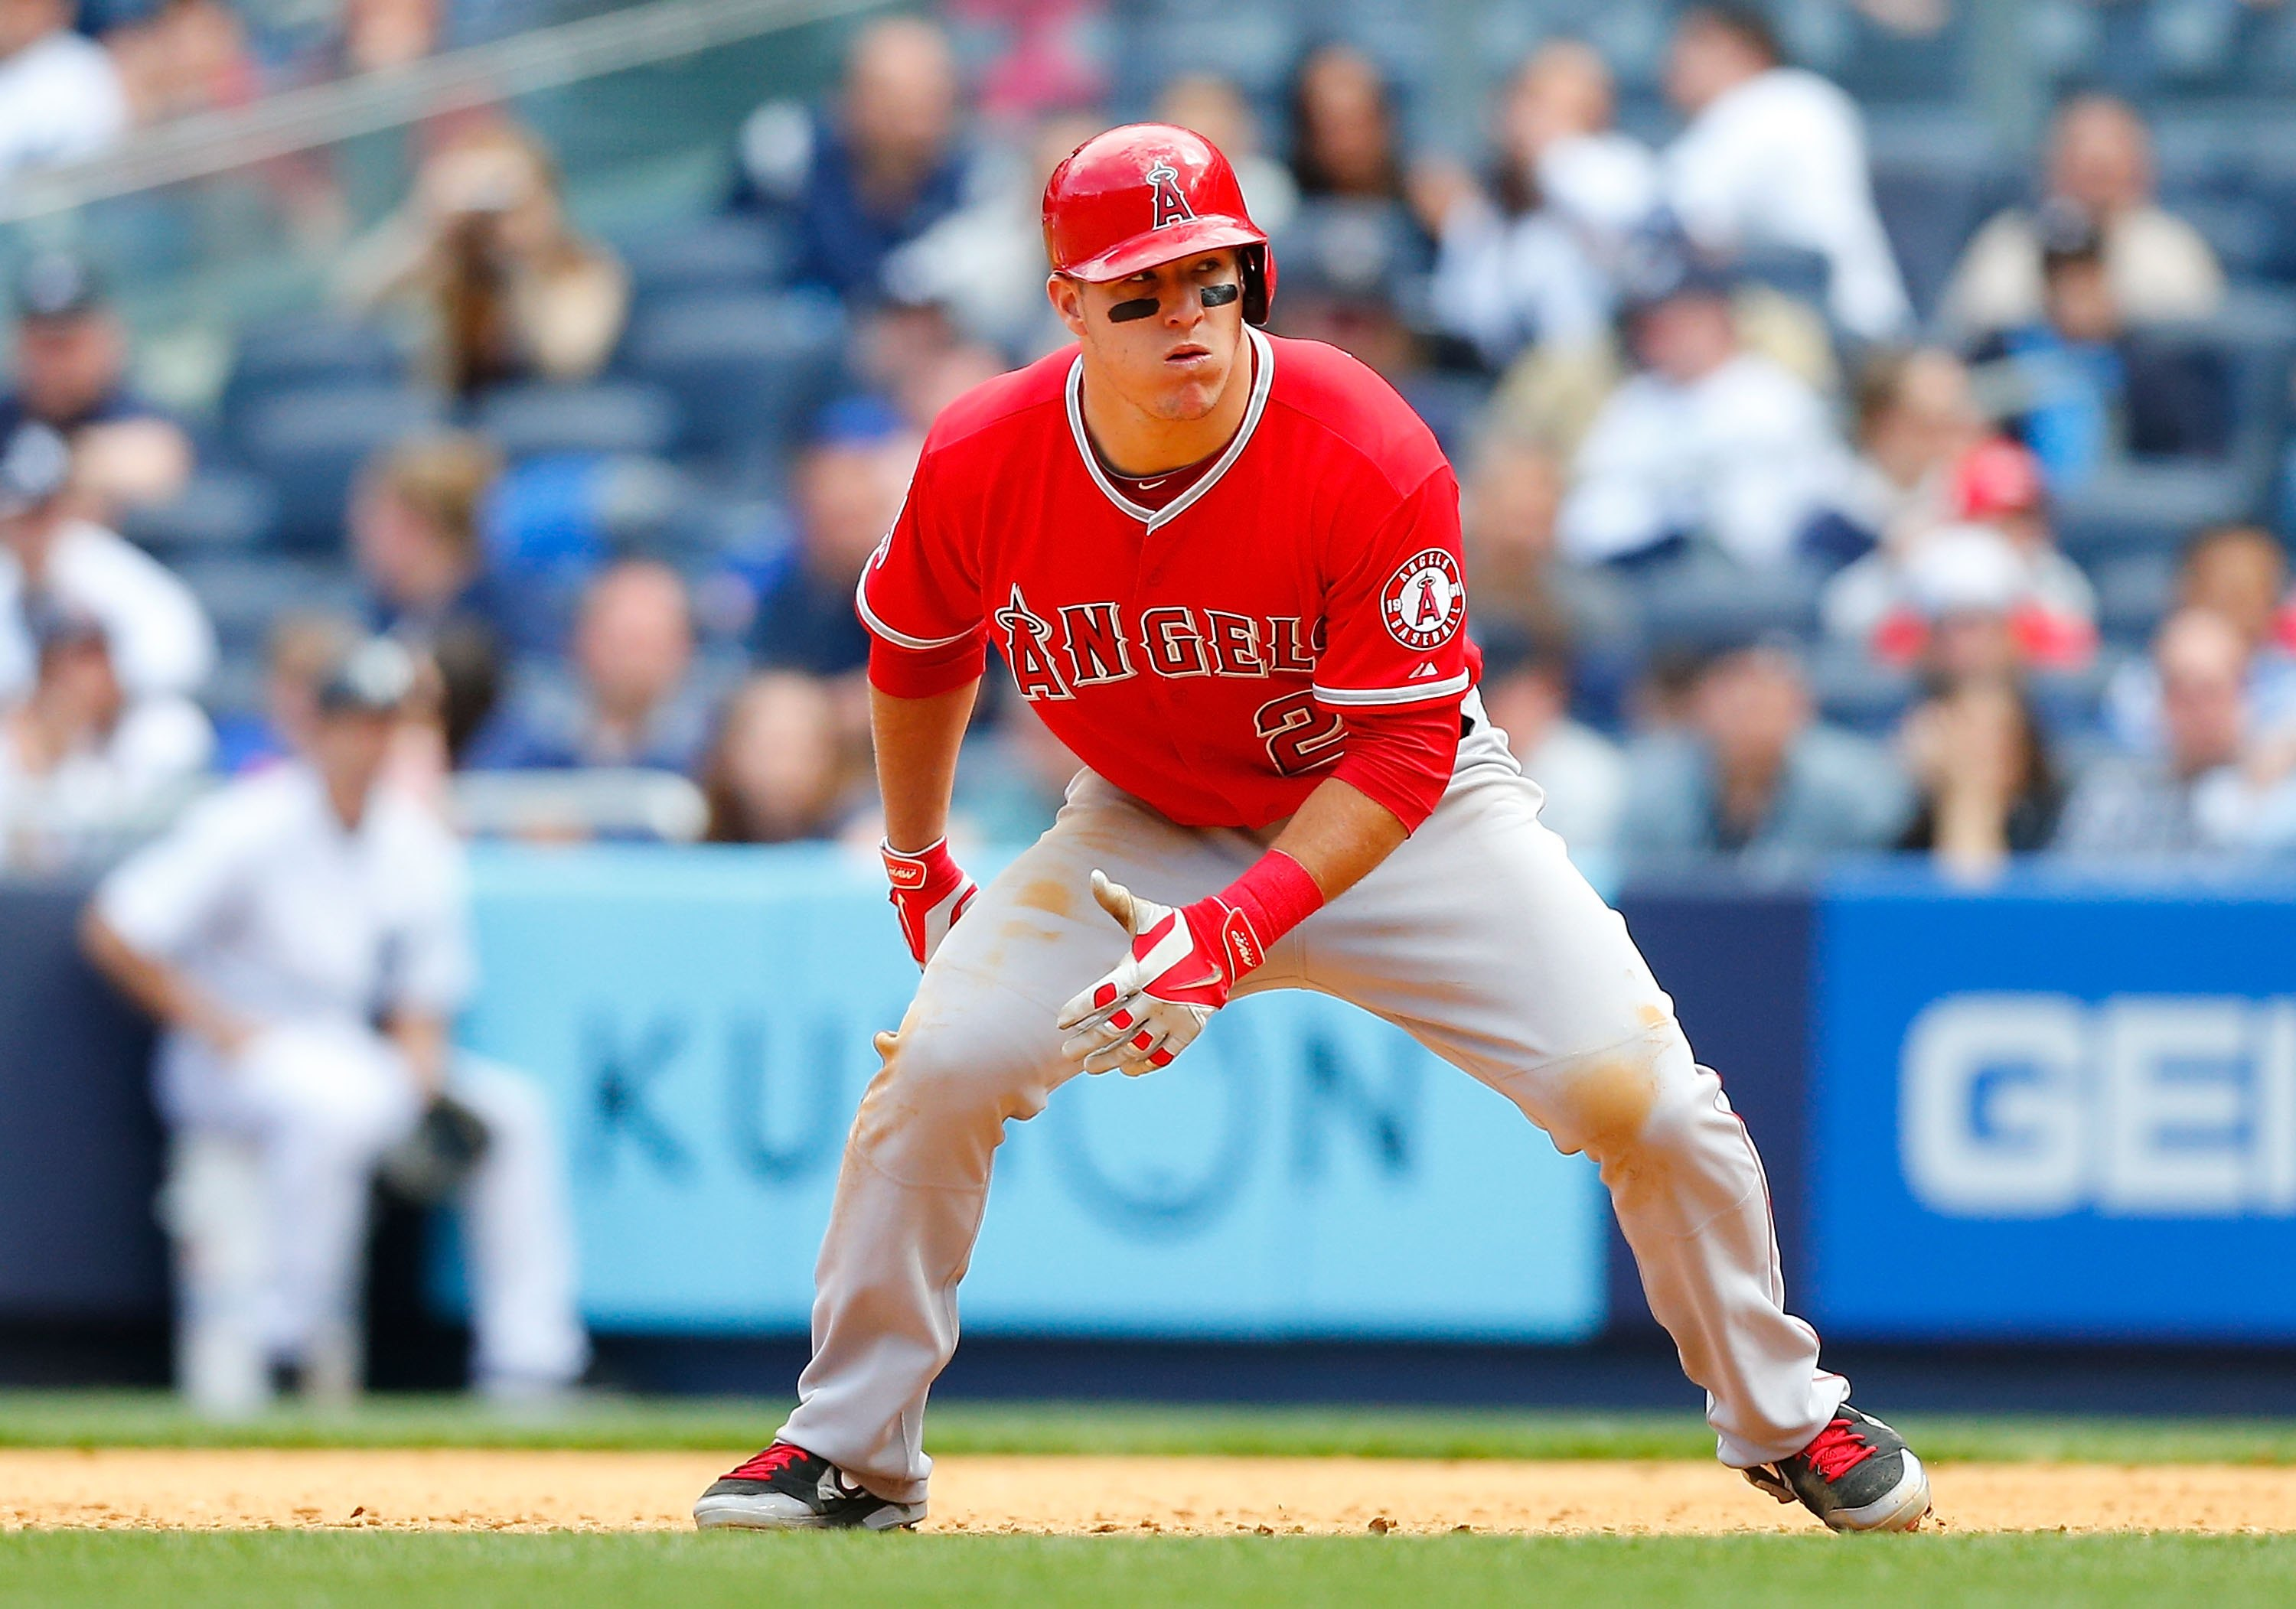 Los Angeles Angels of Anaheim outfielder Mike Trout is my #1 overall pick for fantasy baseball '17 (Photo by Jim McIsaac/Getty Images)